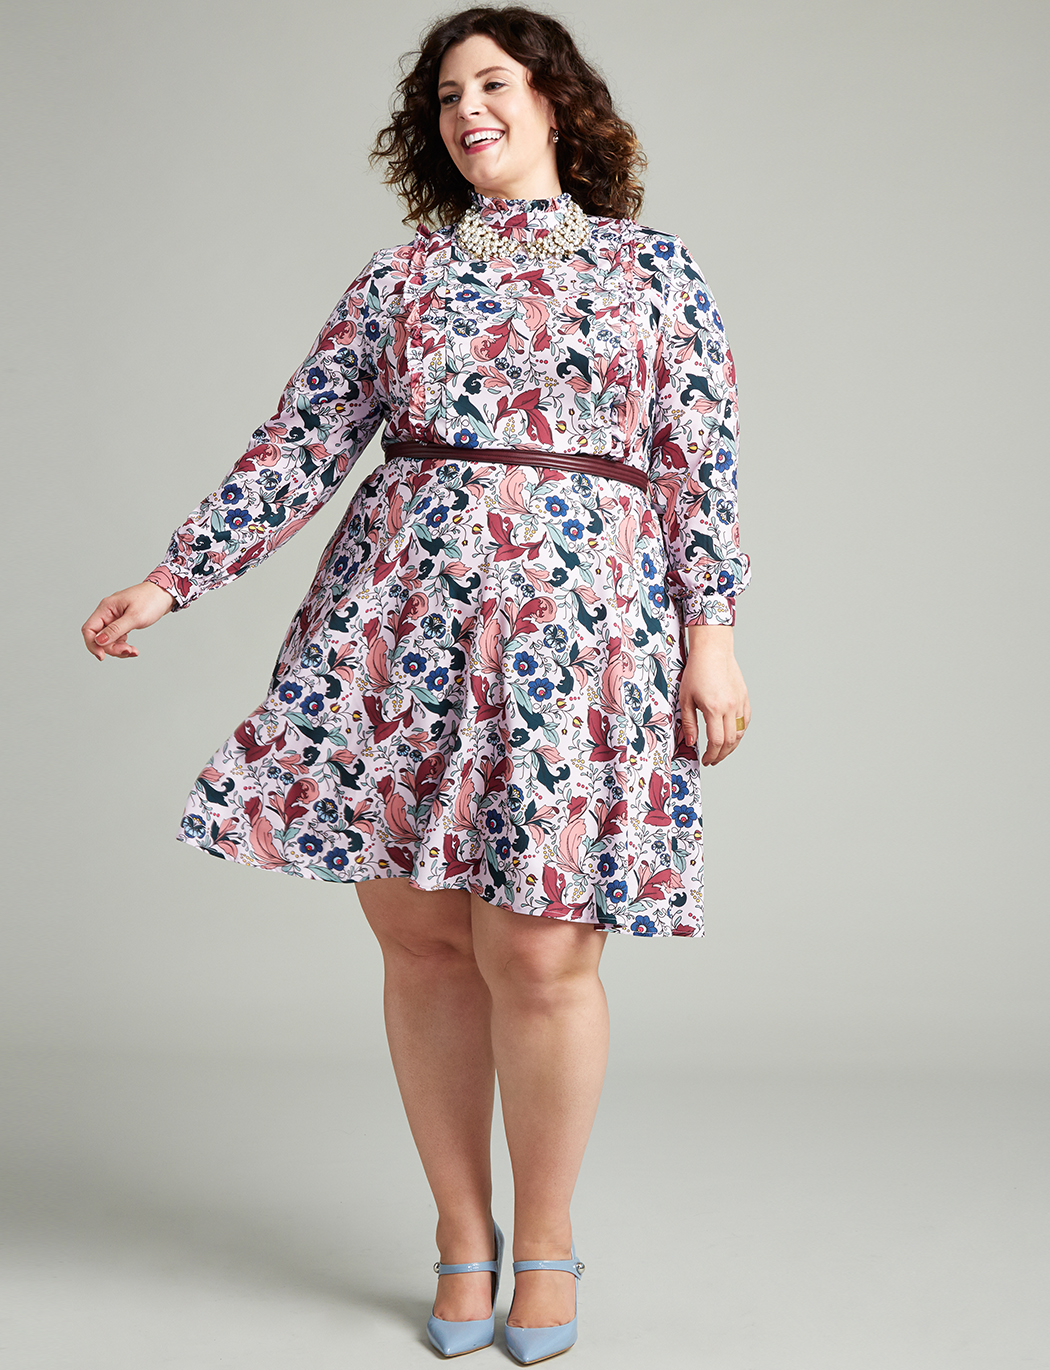 aabcd88f96e1 Ruffle Detail Fit And Flare Dress